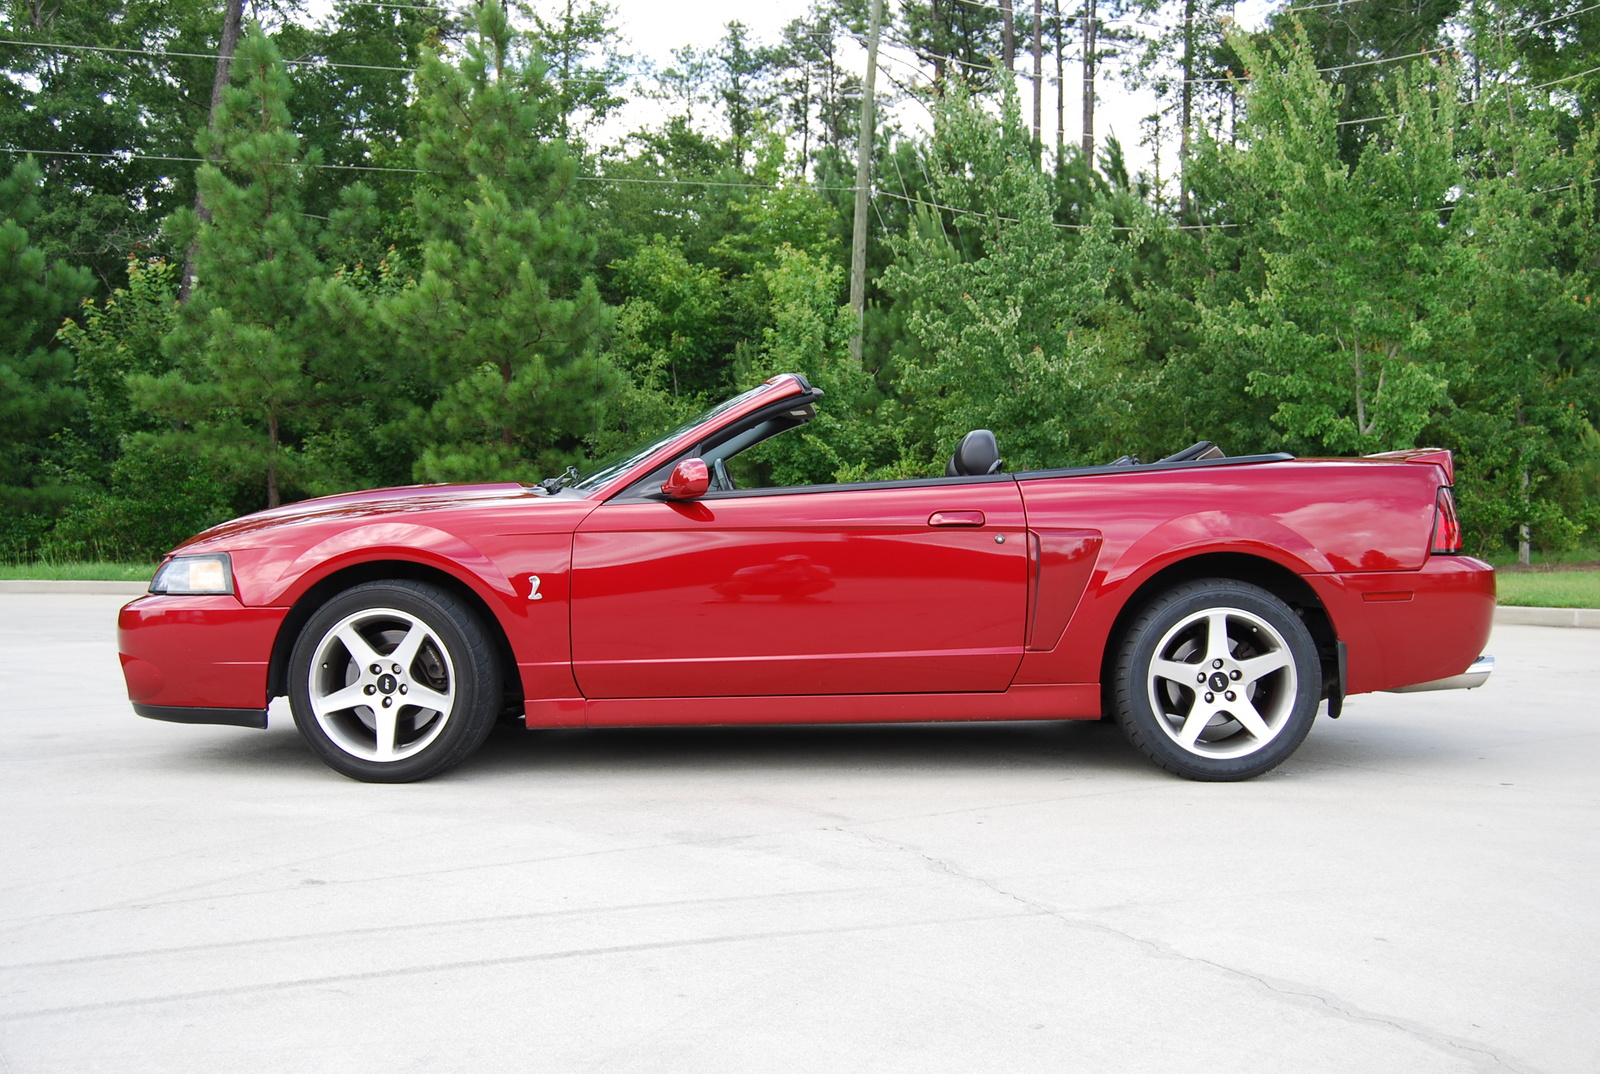 2003 ford mustang svt car autos gallery 2003 ford mustang svt image sciox Images